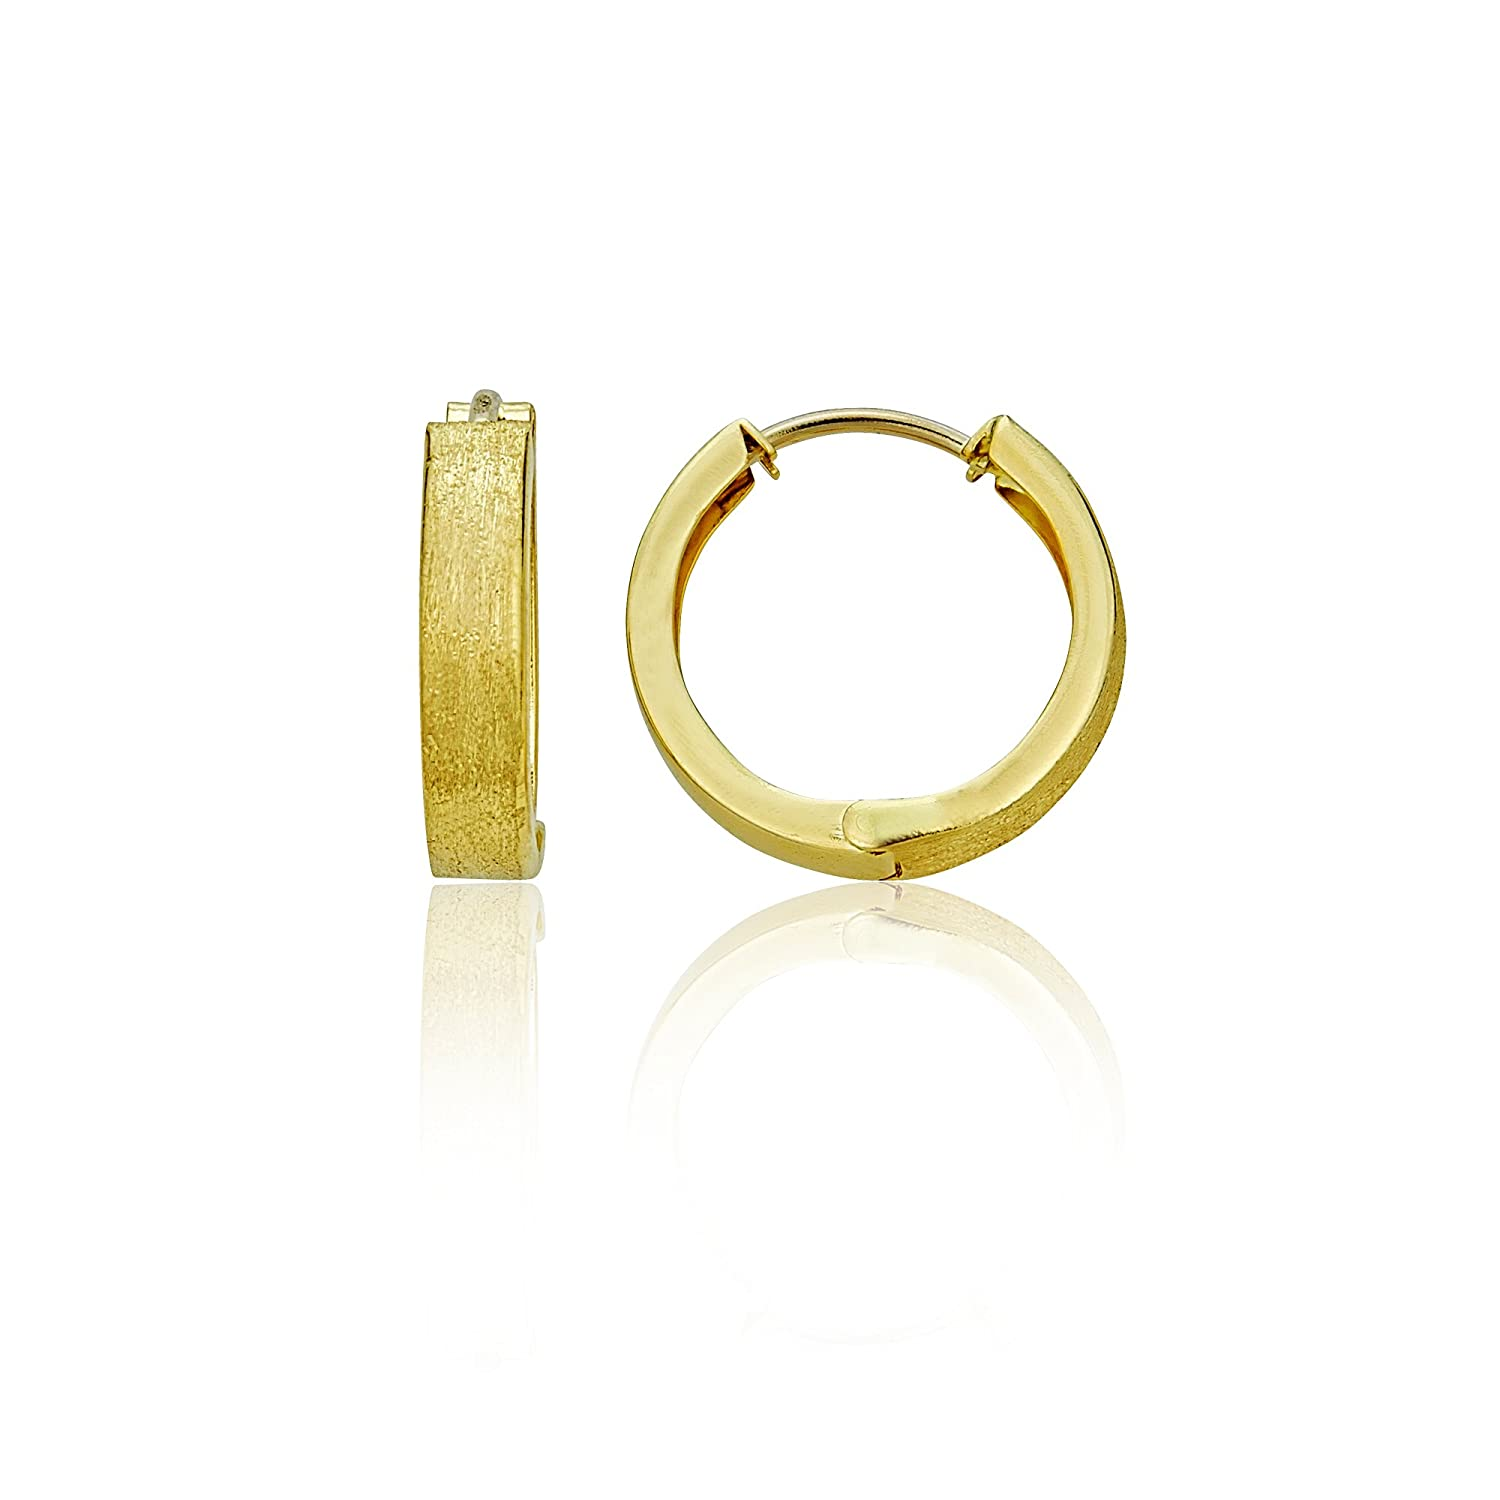 14K Yellow Gold High Polished and Textured 2.90x15.00mm Huggie Earring